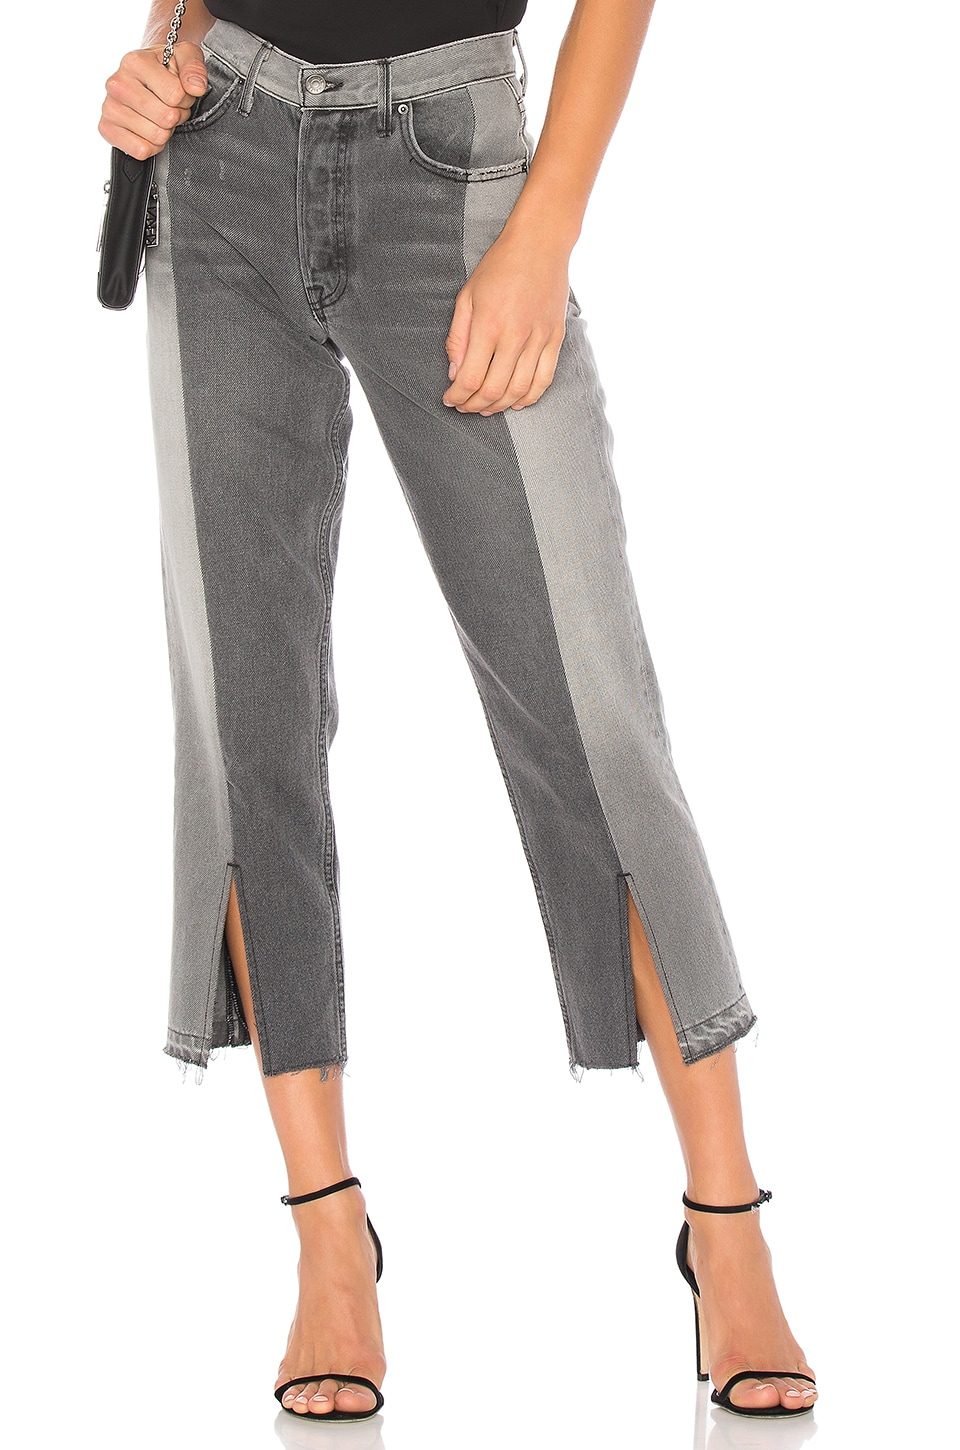 x REVOLVE Helena High-Rise Straight Crop Jean by Grlfrnd